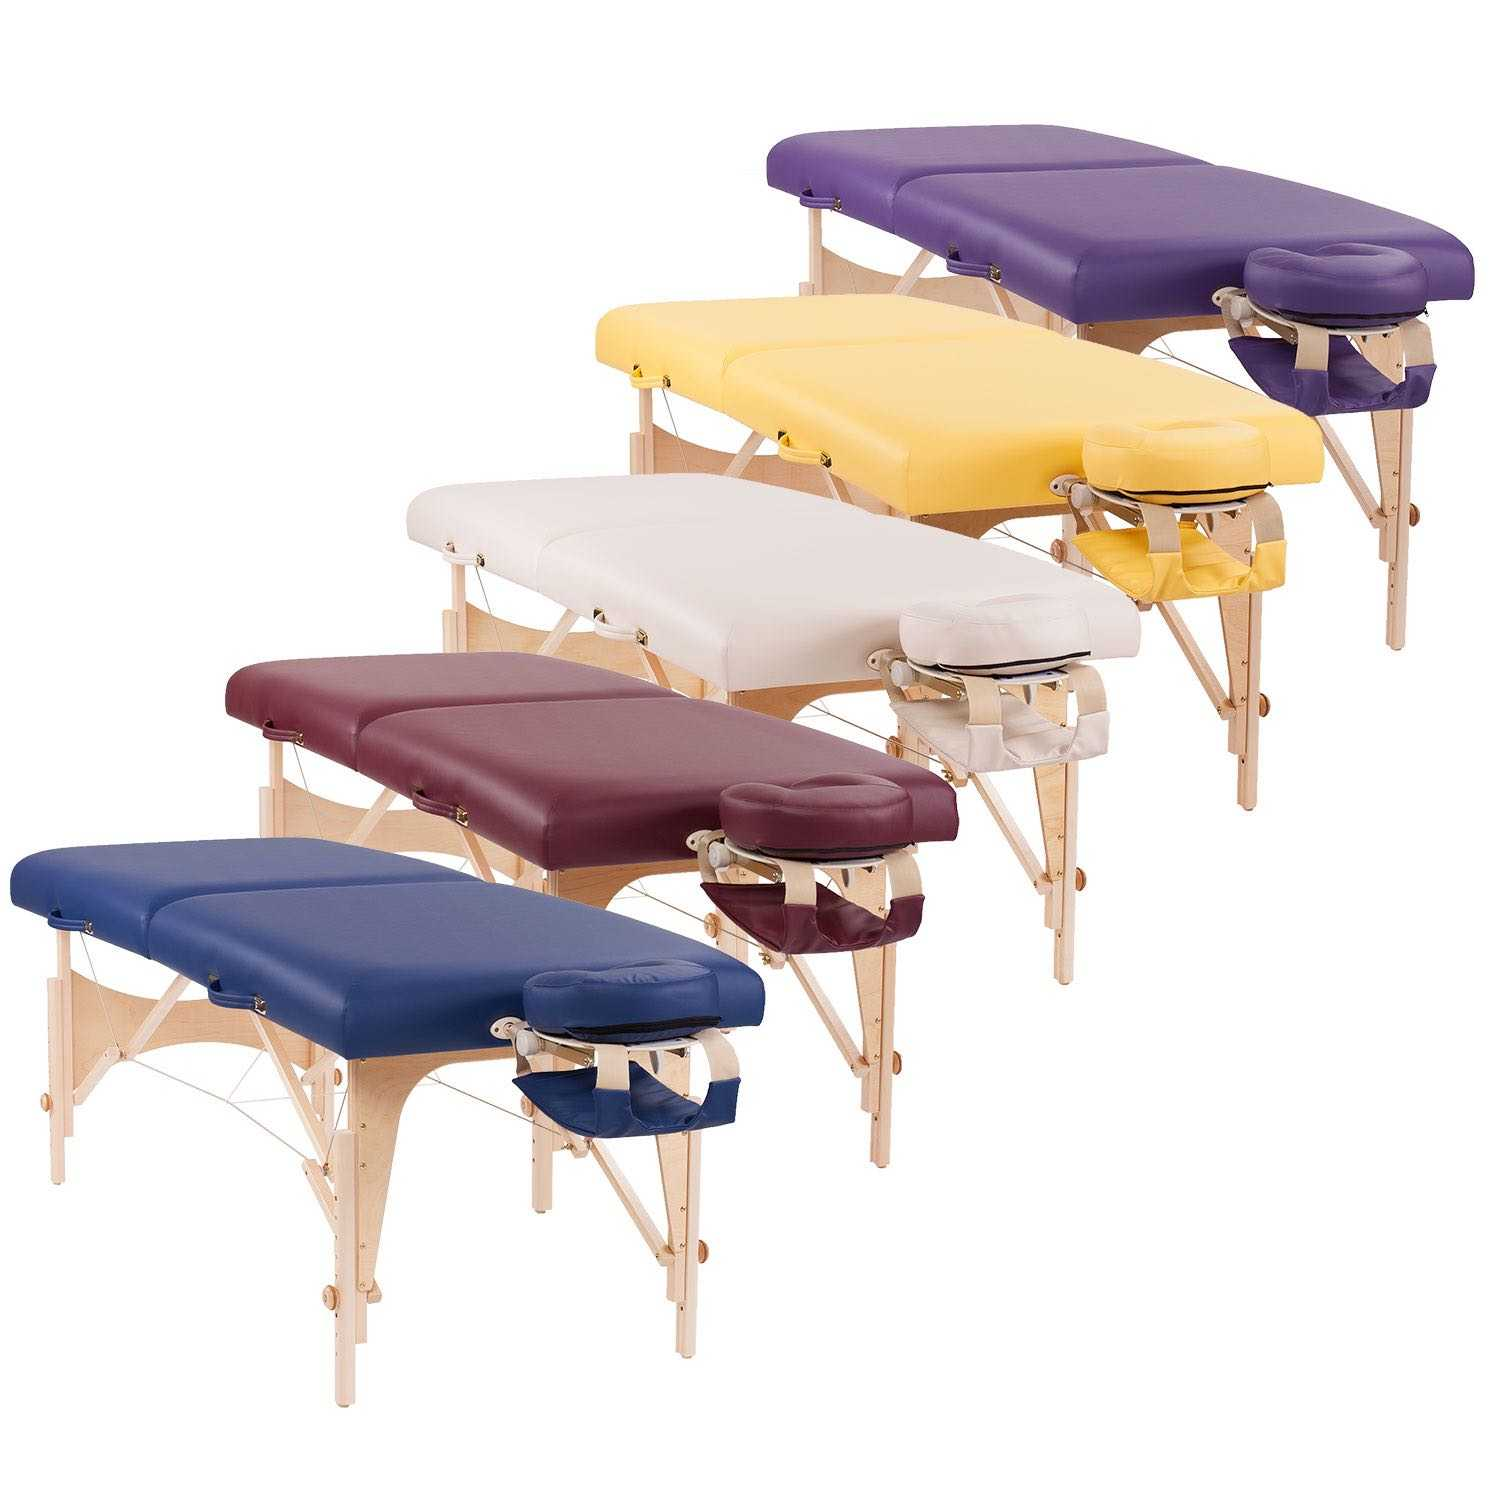 massage table sheets purple fold portable massage table facial spa bed w comphy sheets. Black Bedroom Furniture Sets. Home Design Ideas